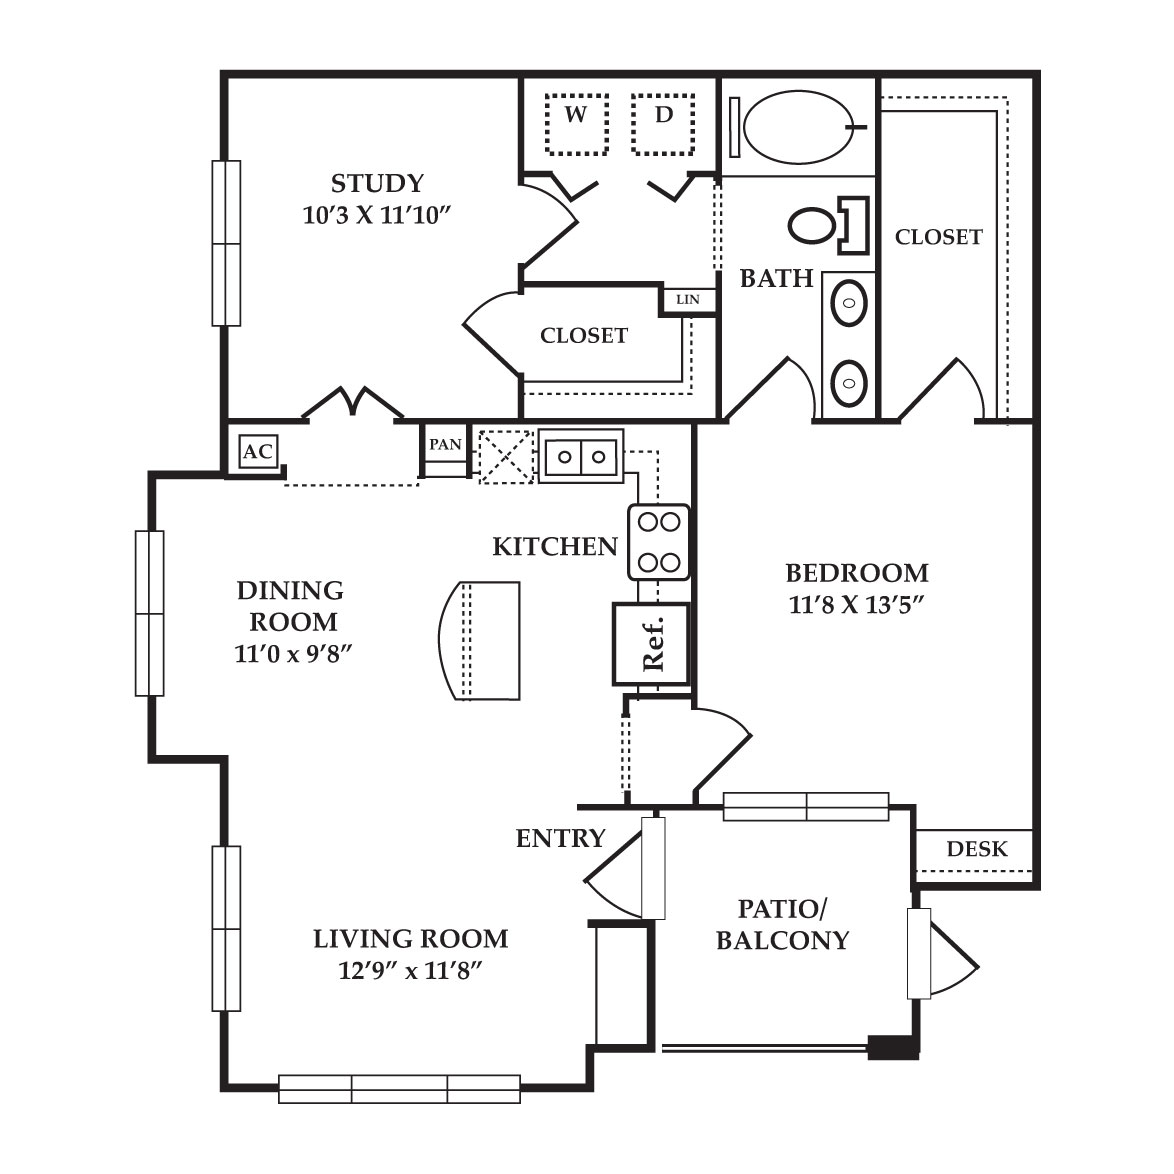 The Preserve at Old Dowlen - Floorplan - Topaz